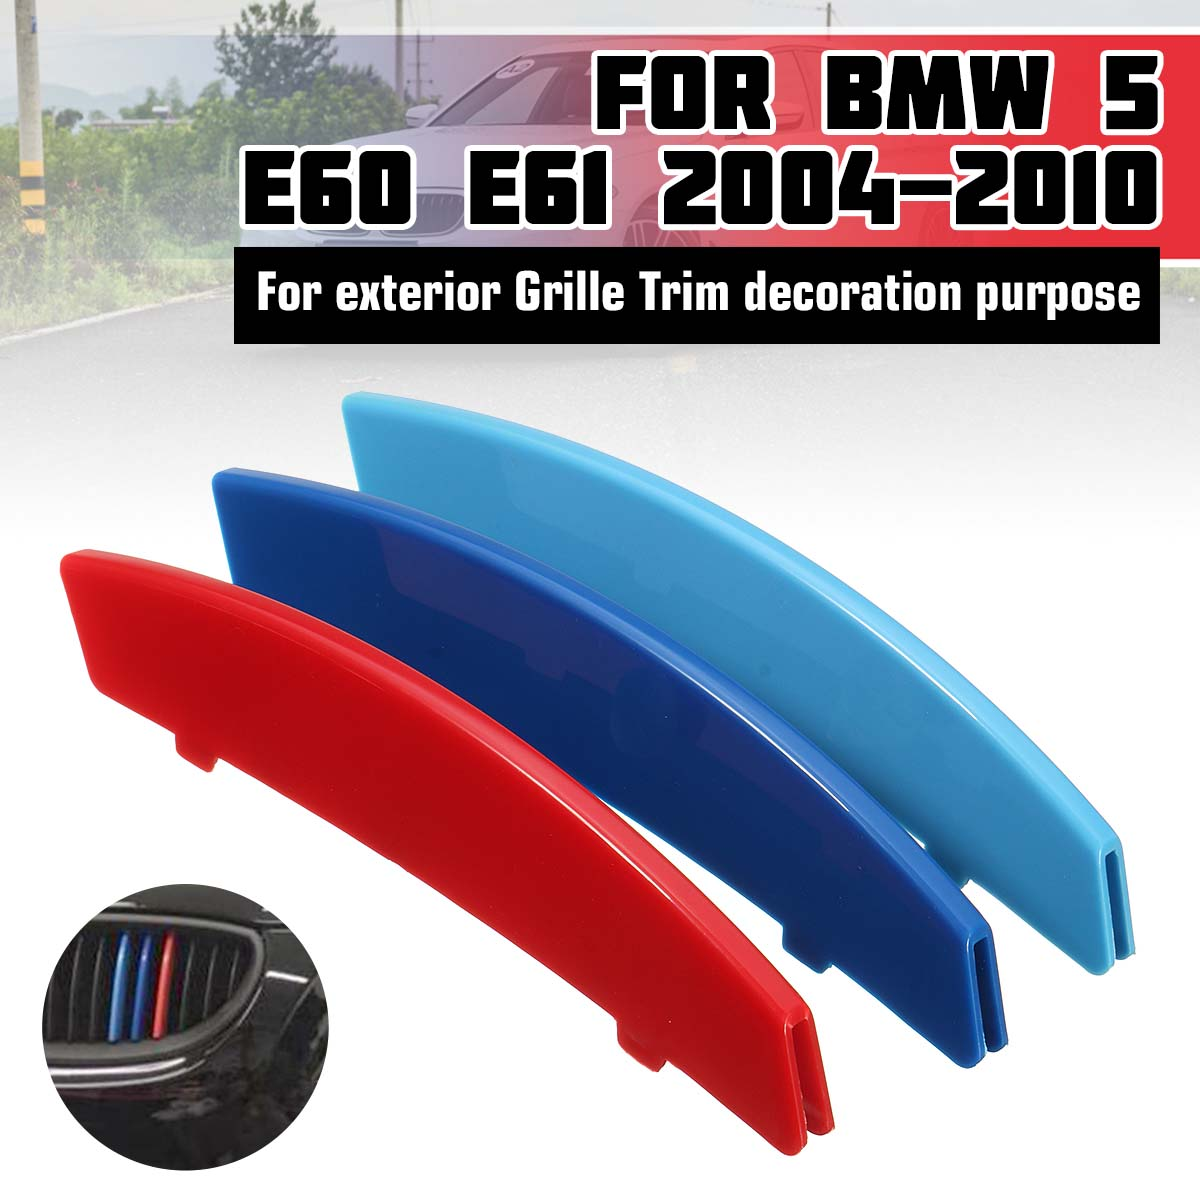 3pcs <font><b>Car</b></font> 3D M Styling Front Grille Trim Strip Cover Bumper <font><b>Stripes</b></font> Cover Stickers for <font><b>BMW</b></font> 5 Series E60 2004-2010 image